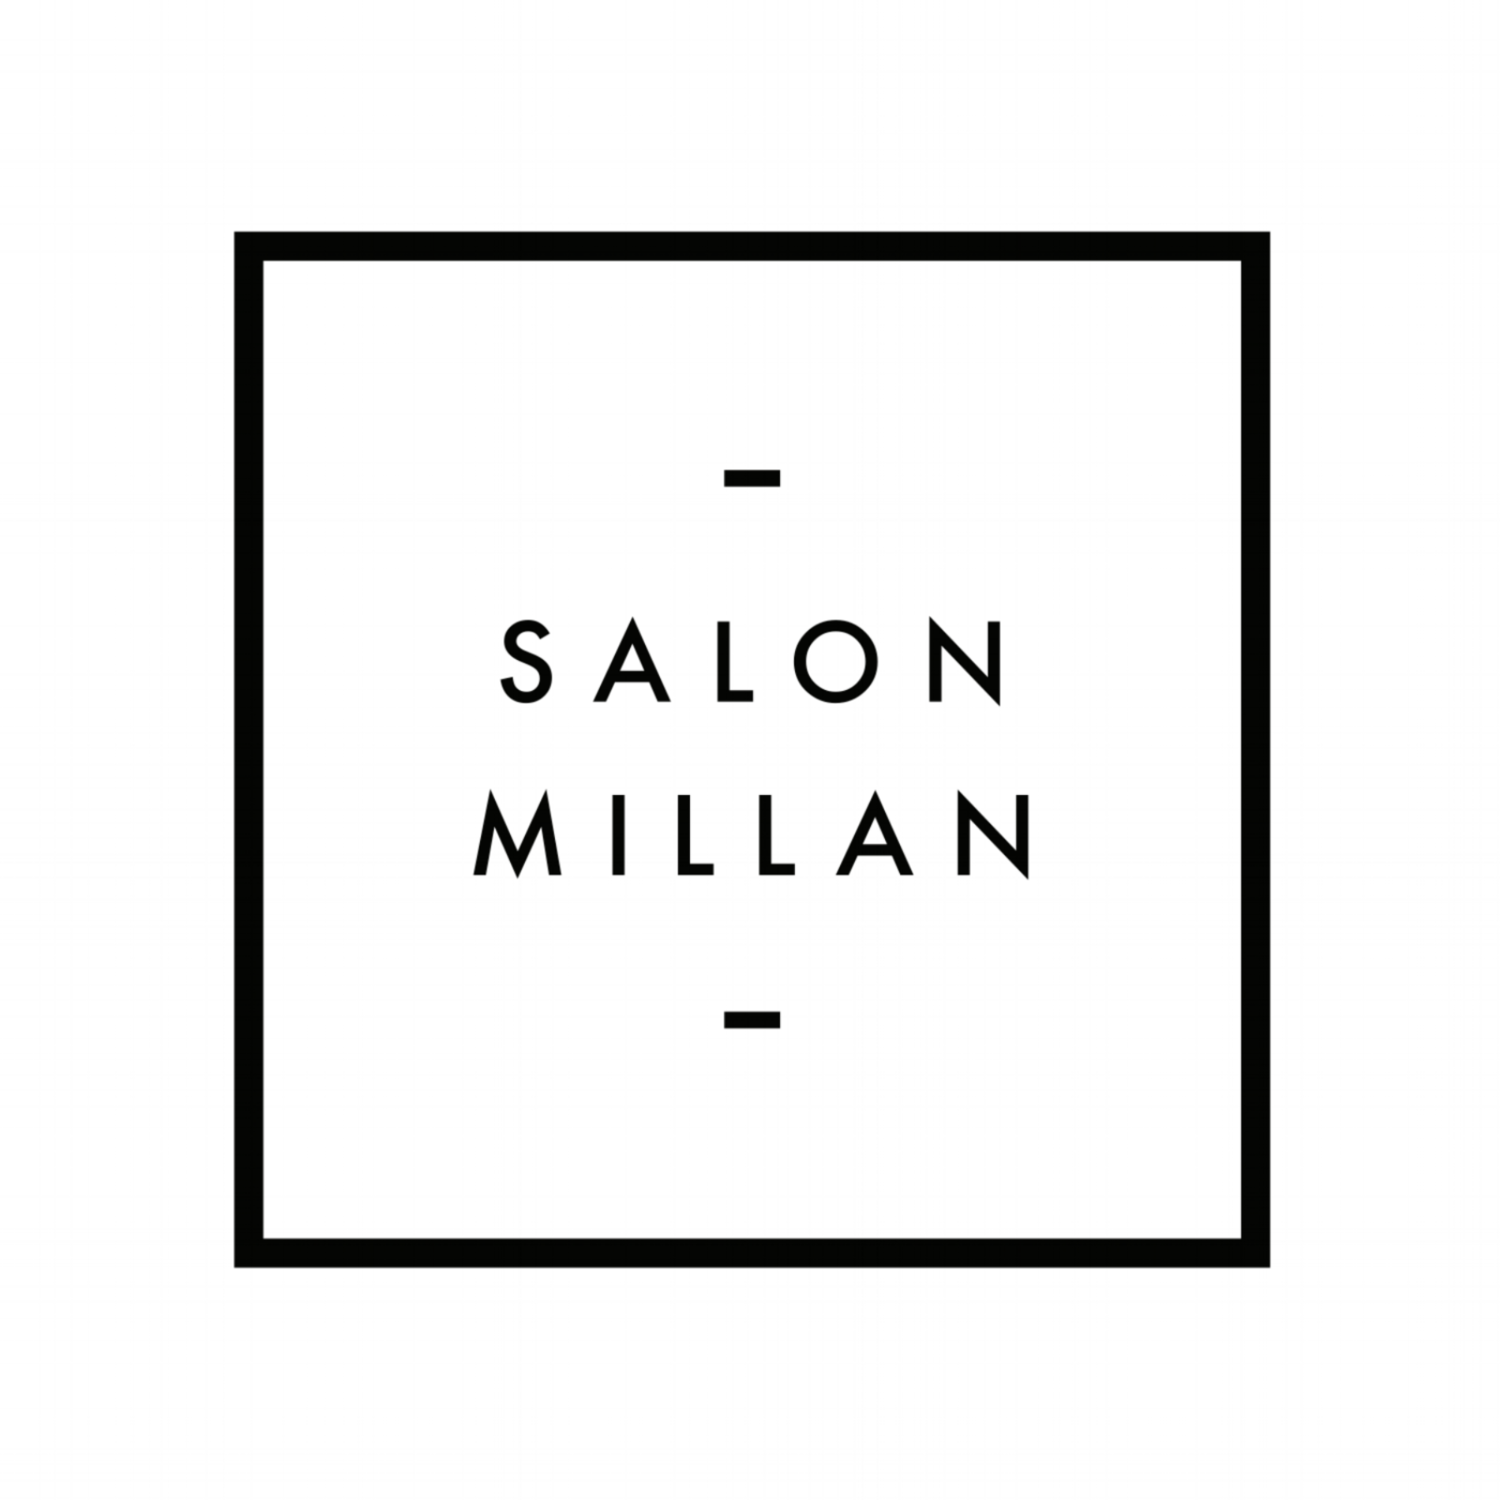 SALON MILLAN